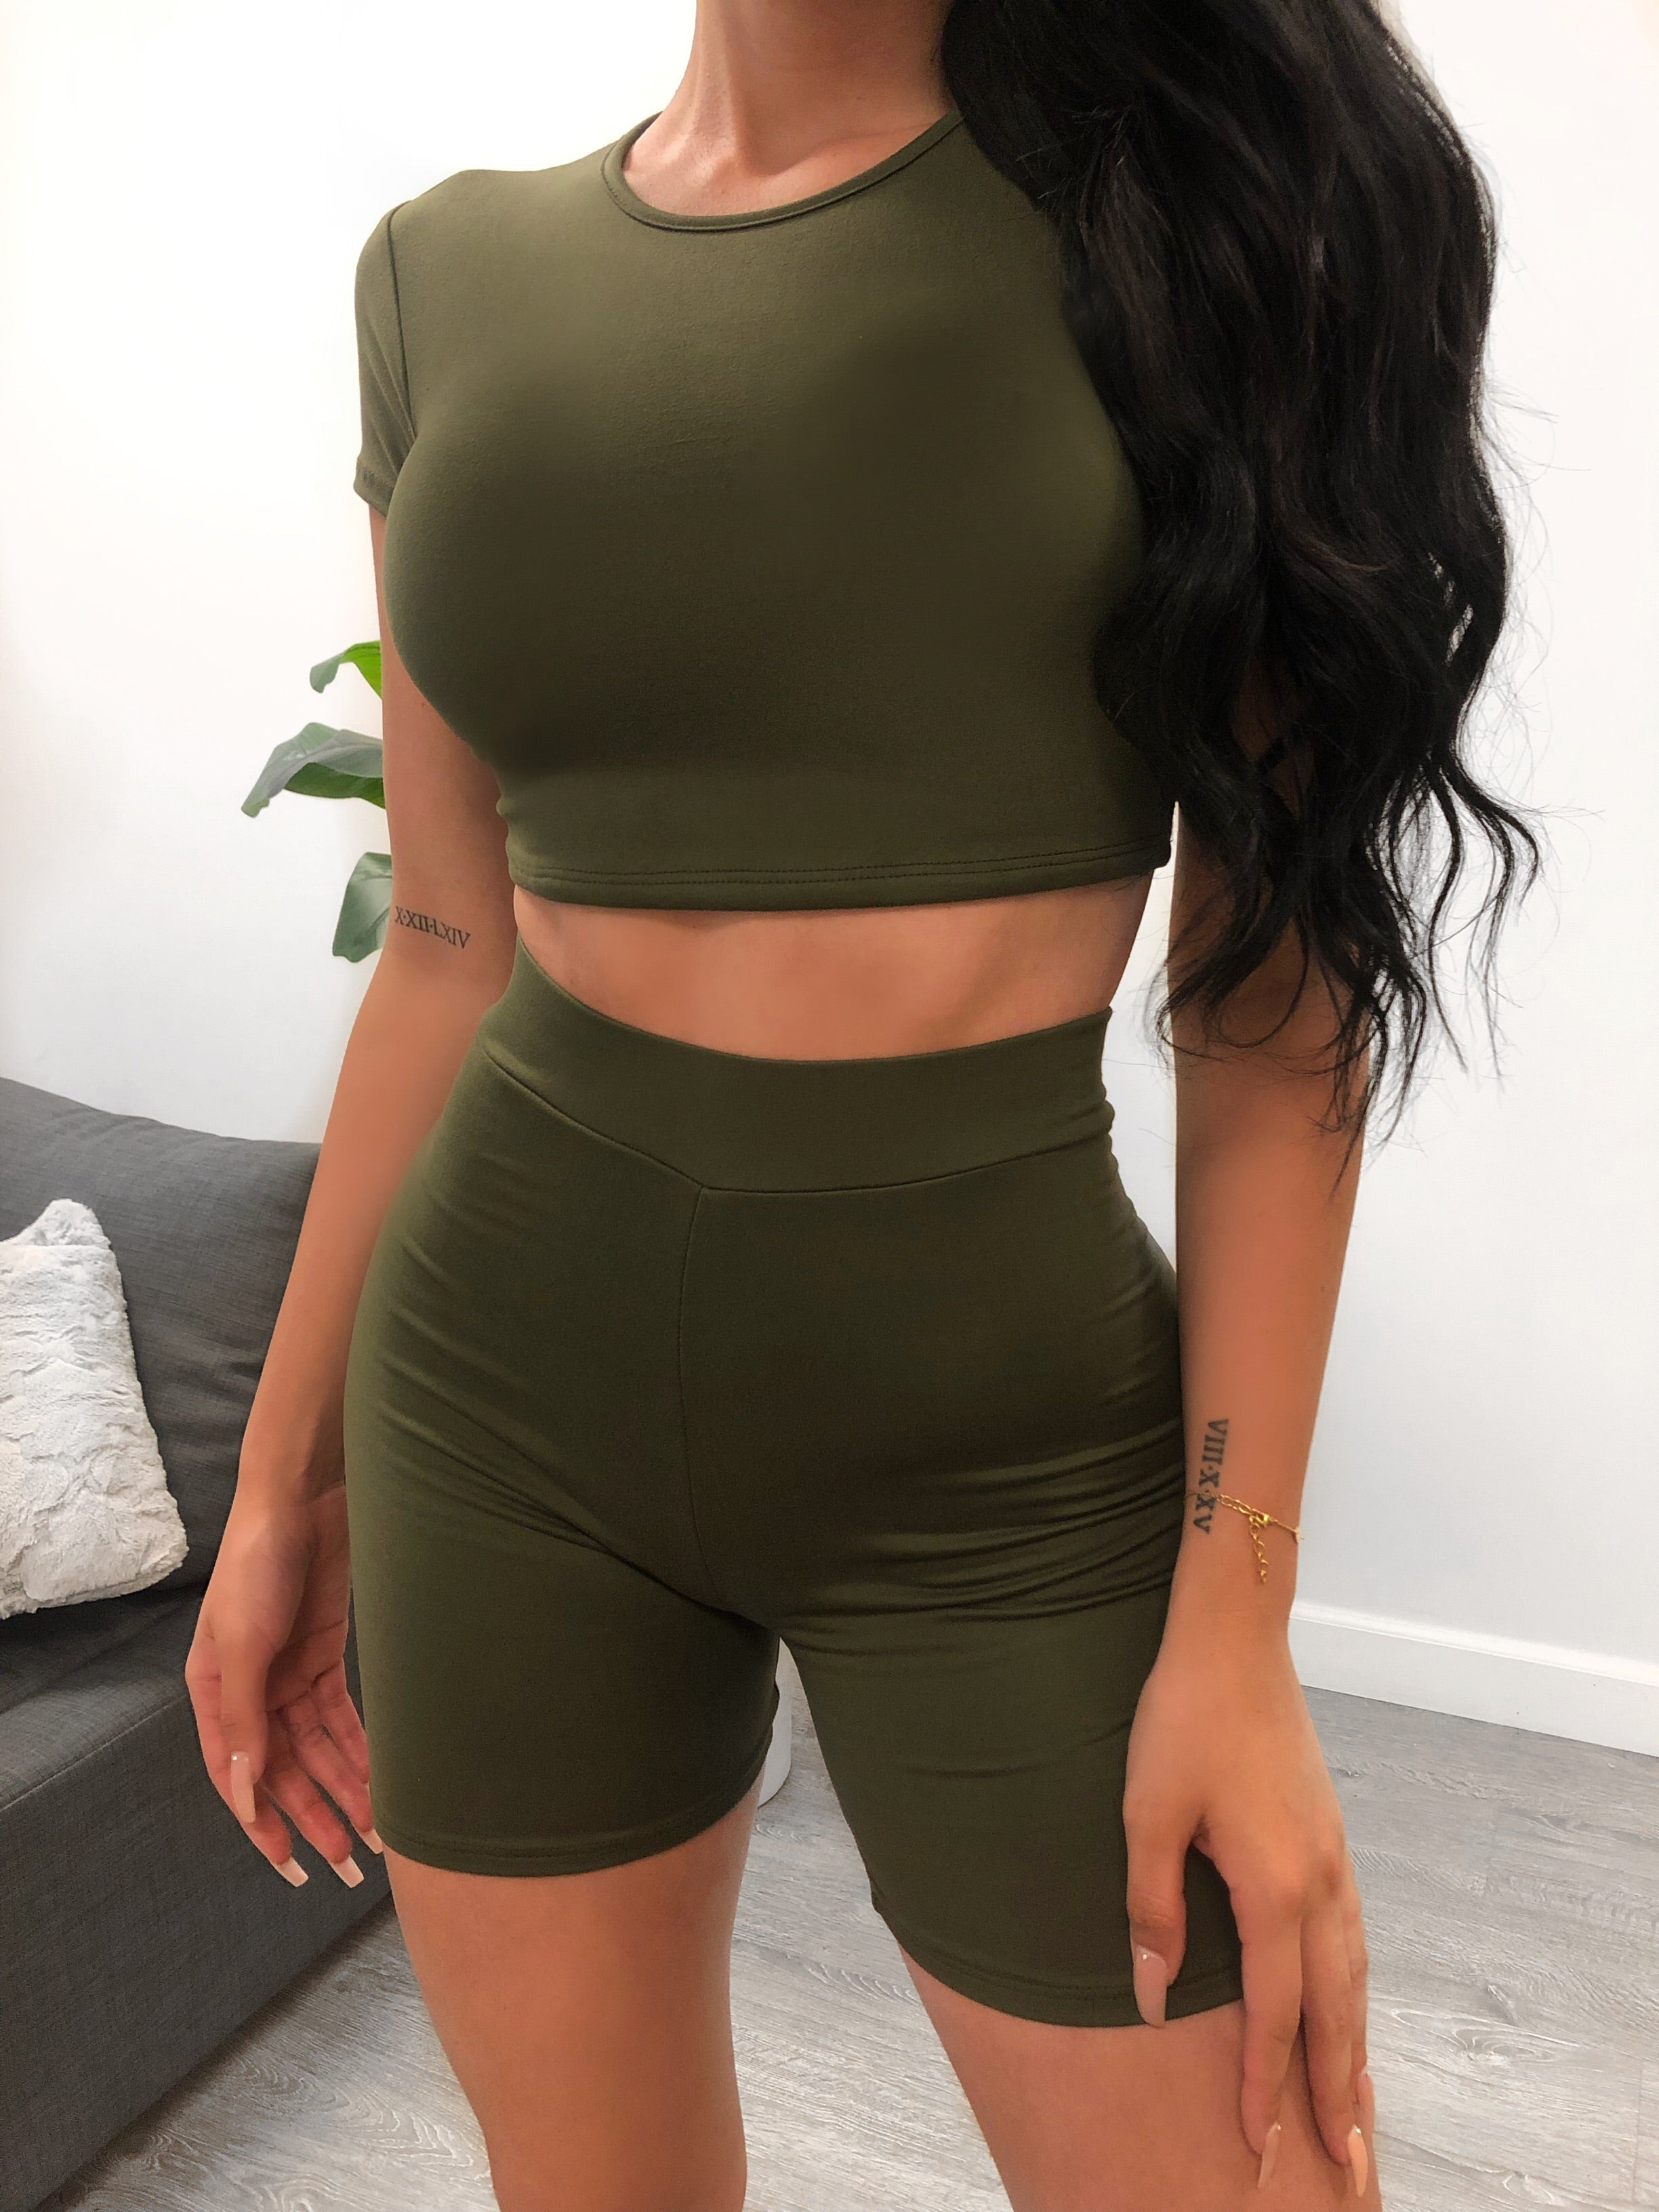 olive two piece, shirt is cropped crewneck and t-shirt sleeves. shorts are high waisted with elastic band at waist, shorts length are mid thigh.